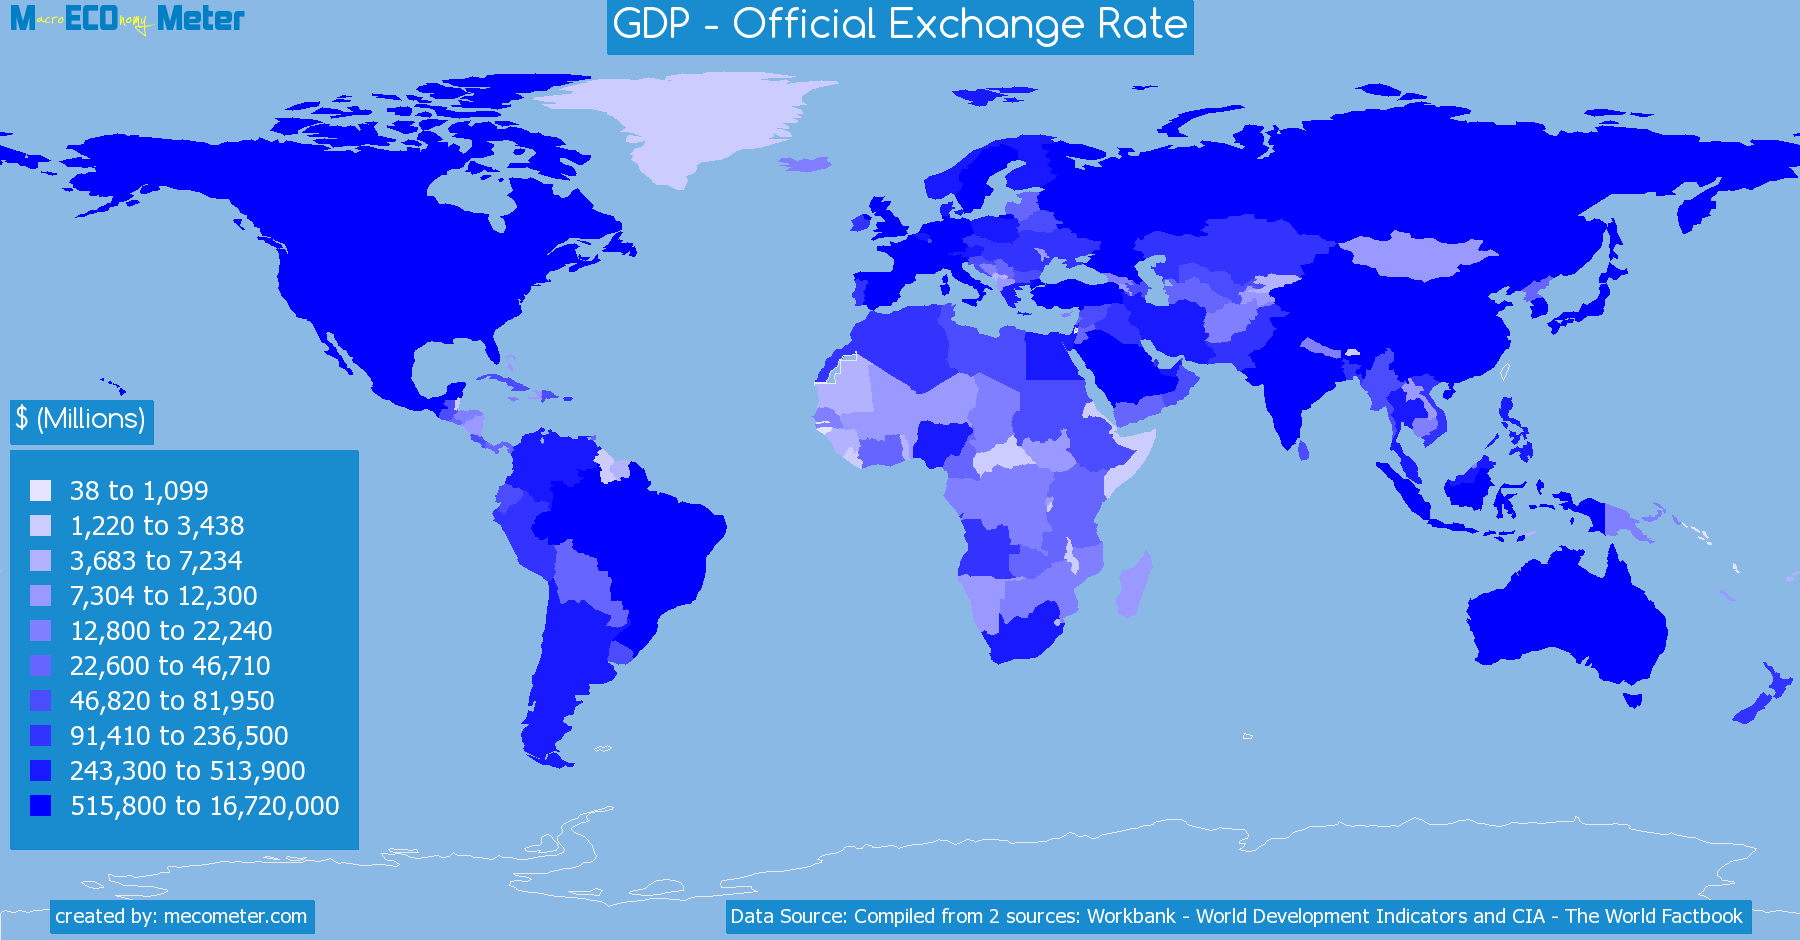 Worldmap of all countries colored to reflect the values of GDP - Official Exchange Rate